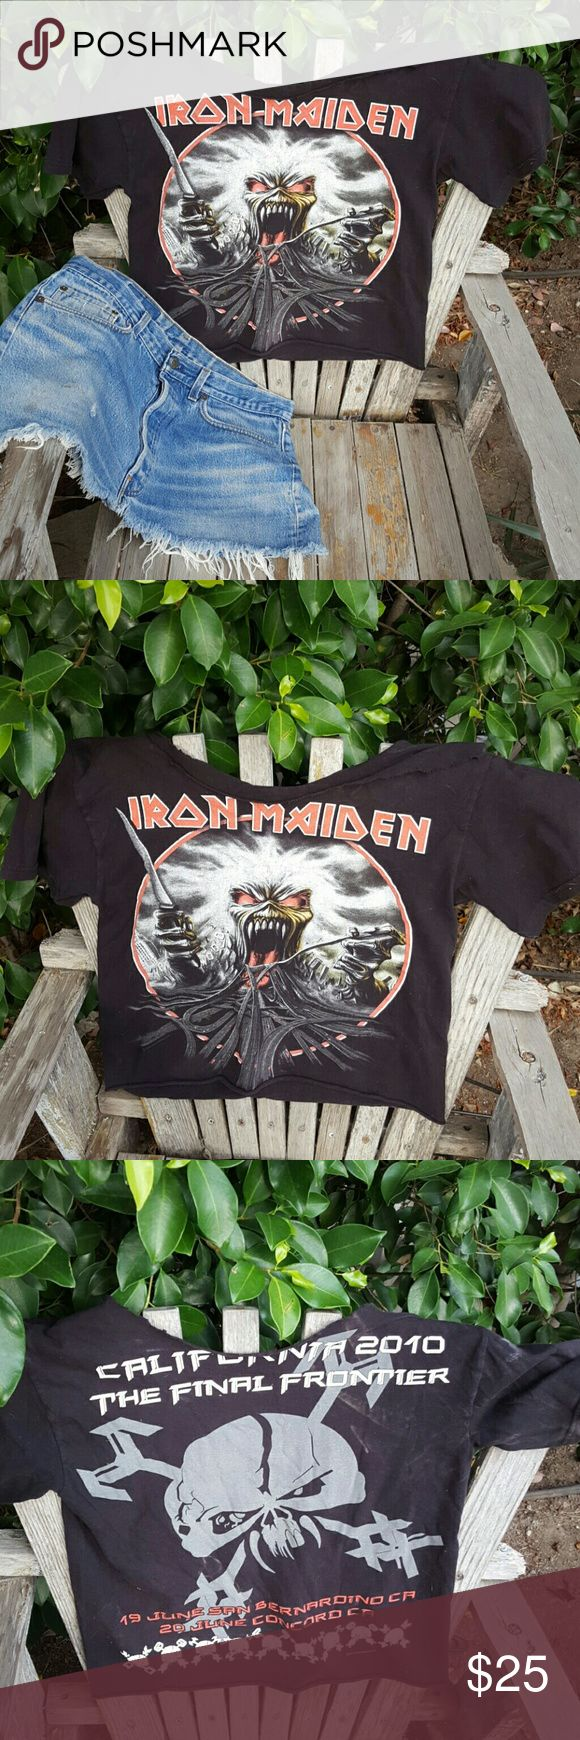 Iron Maiden Concert Tshirt Perfectly cut up Iron Maiden concert tshirt . Great with Cut off Levi's shorts small but fits like a medium fine for both sizes Tops Tees - Short Sleeve